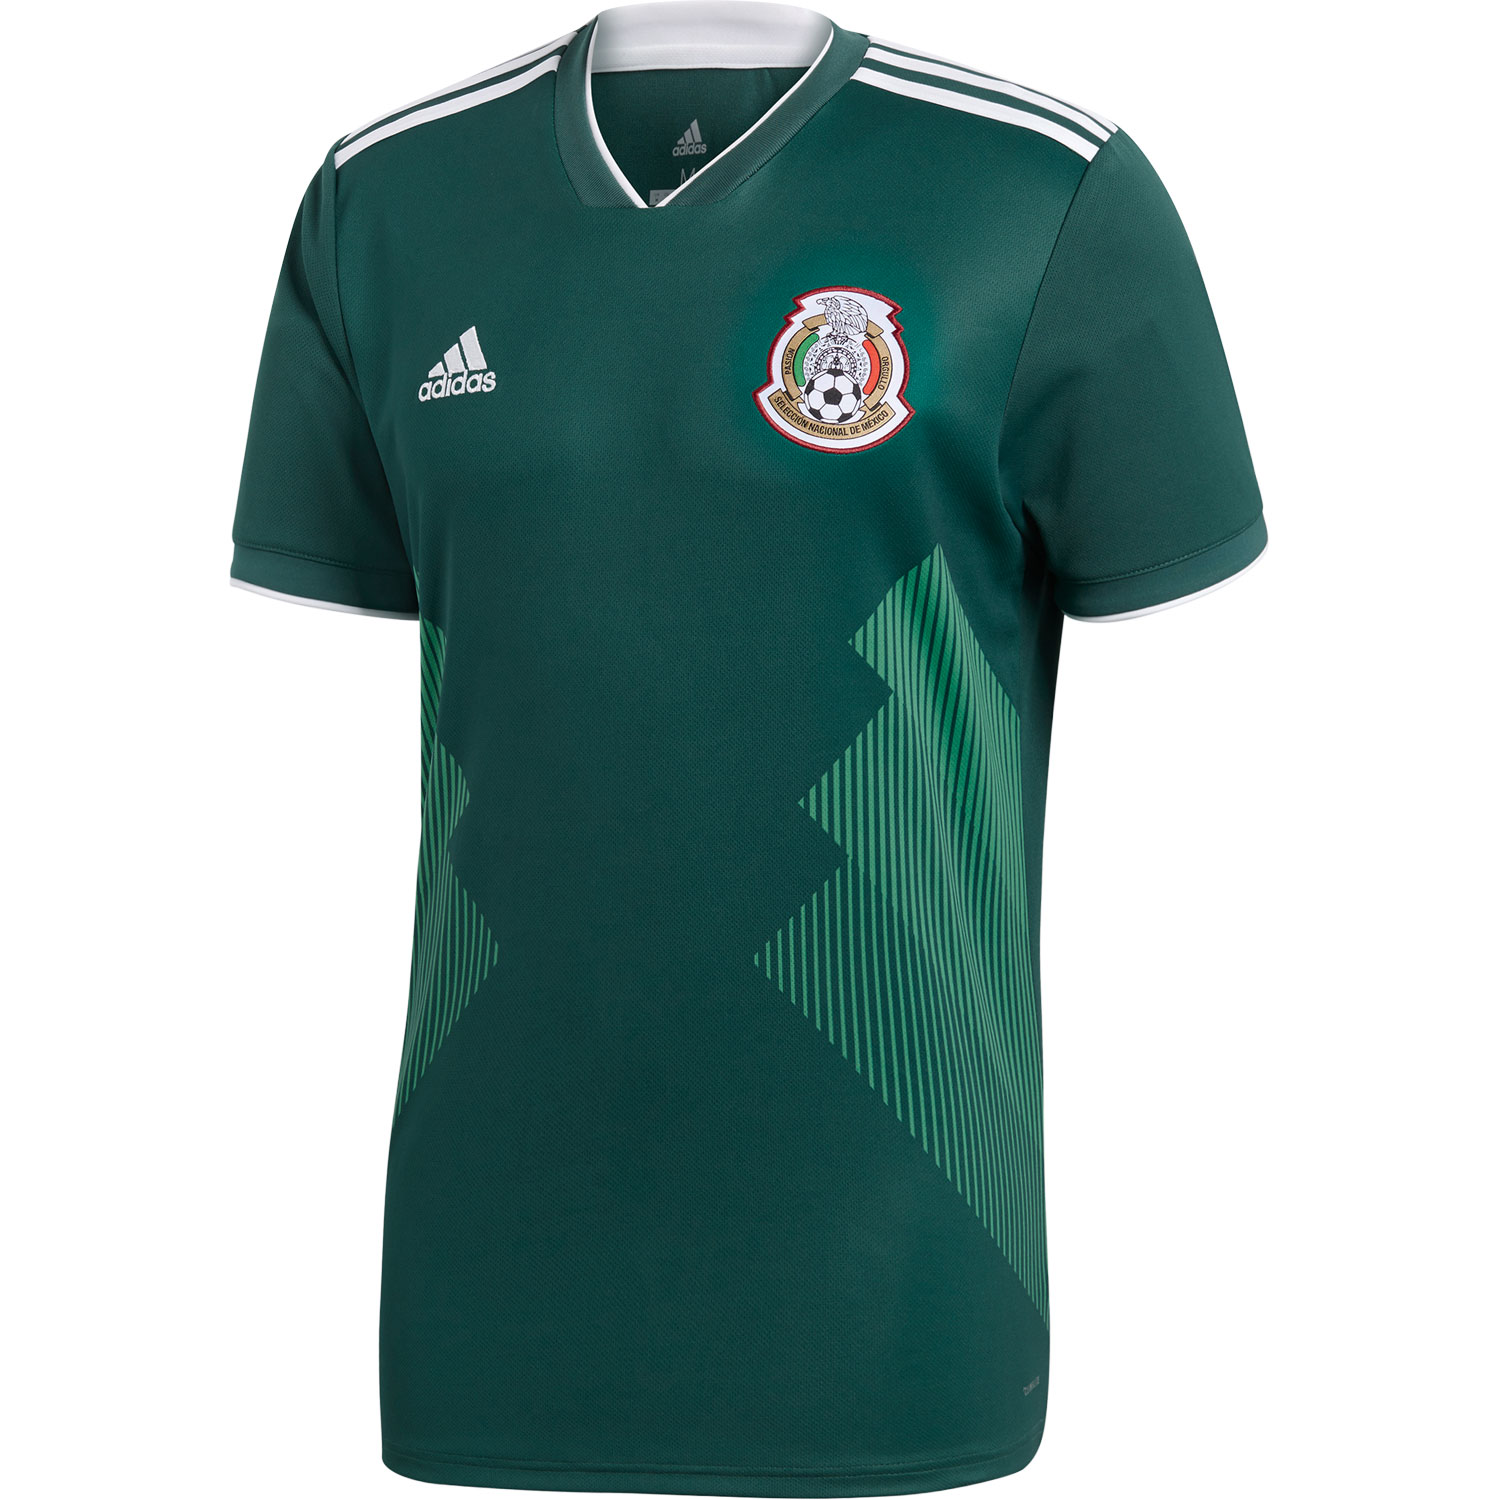 adidas Mexico 2018 World Cup Home Replica Jersey 63674c00b